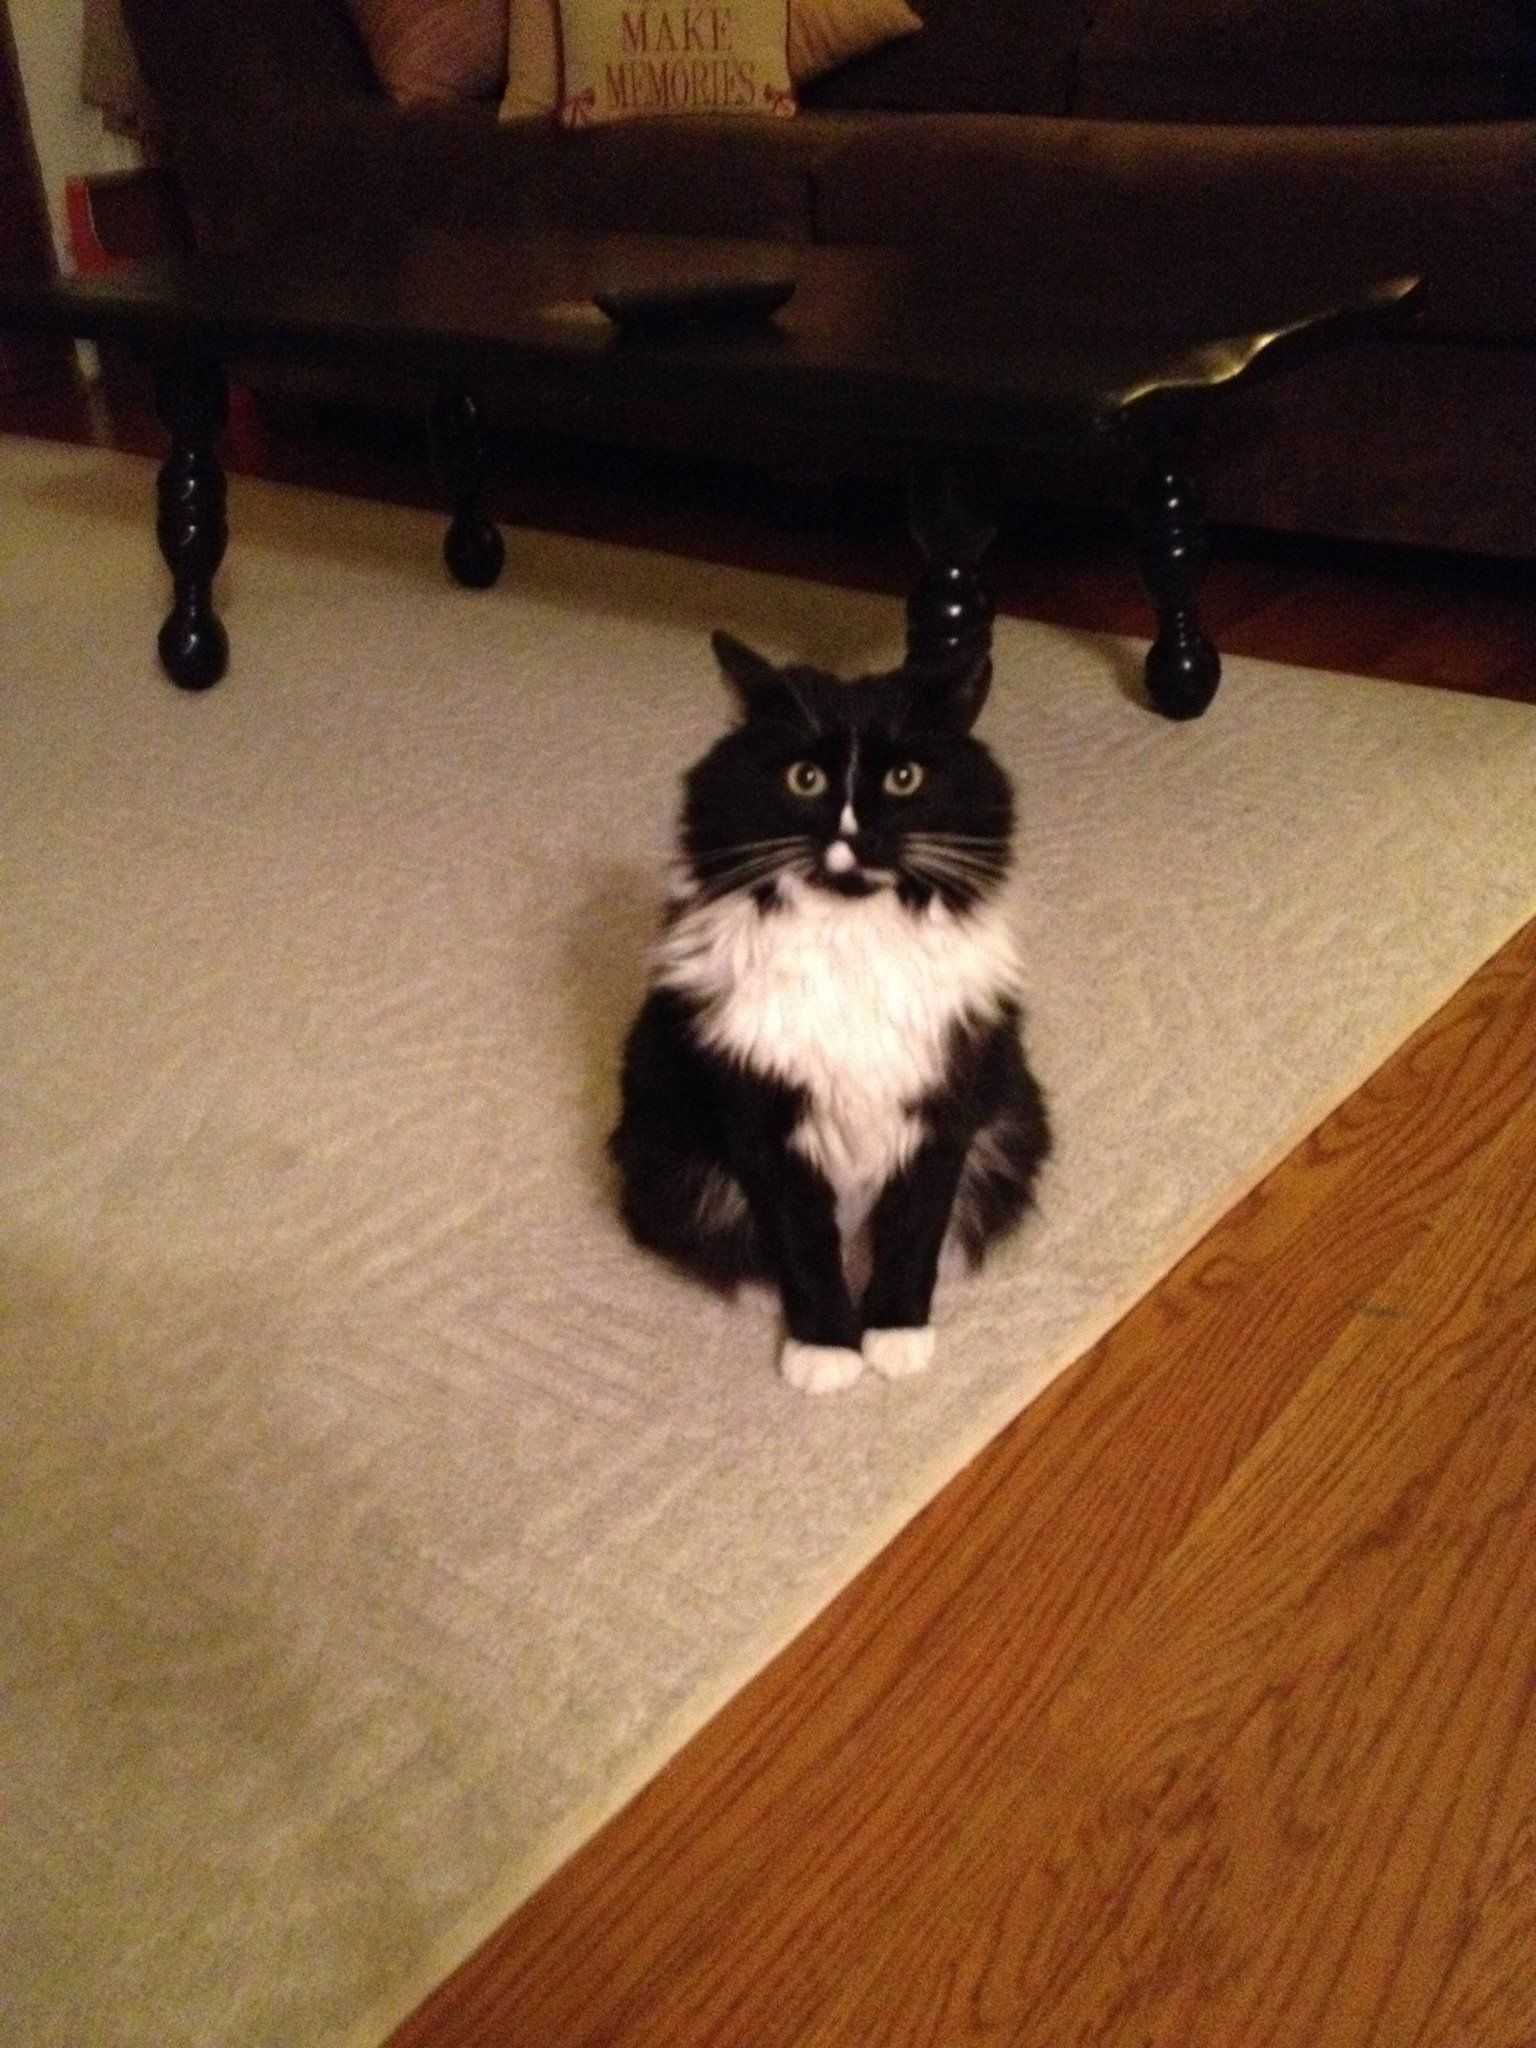 Missing in Waterbury.  We lost our beloved cat Lucy on the 14th of May. She is black and white long haired. She is also a inside cat. Lost her from our house off of oronoke rd in condos in waterbury. Please if anyone has seen her or has taken her in, please call me 860-329-2230. Our hearts our broken with out her.